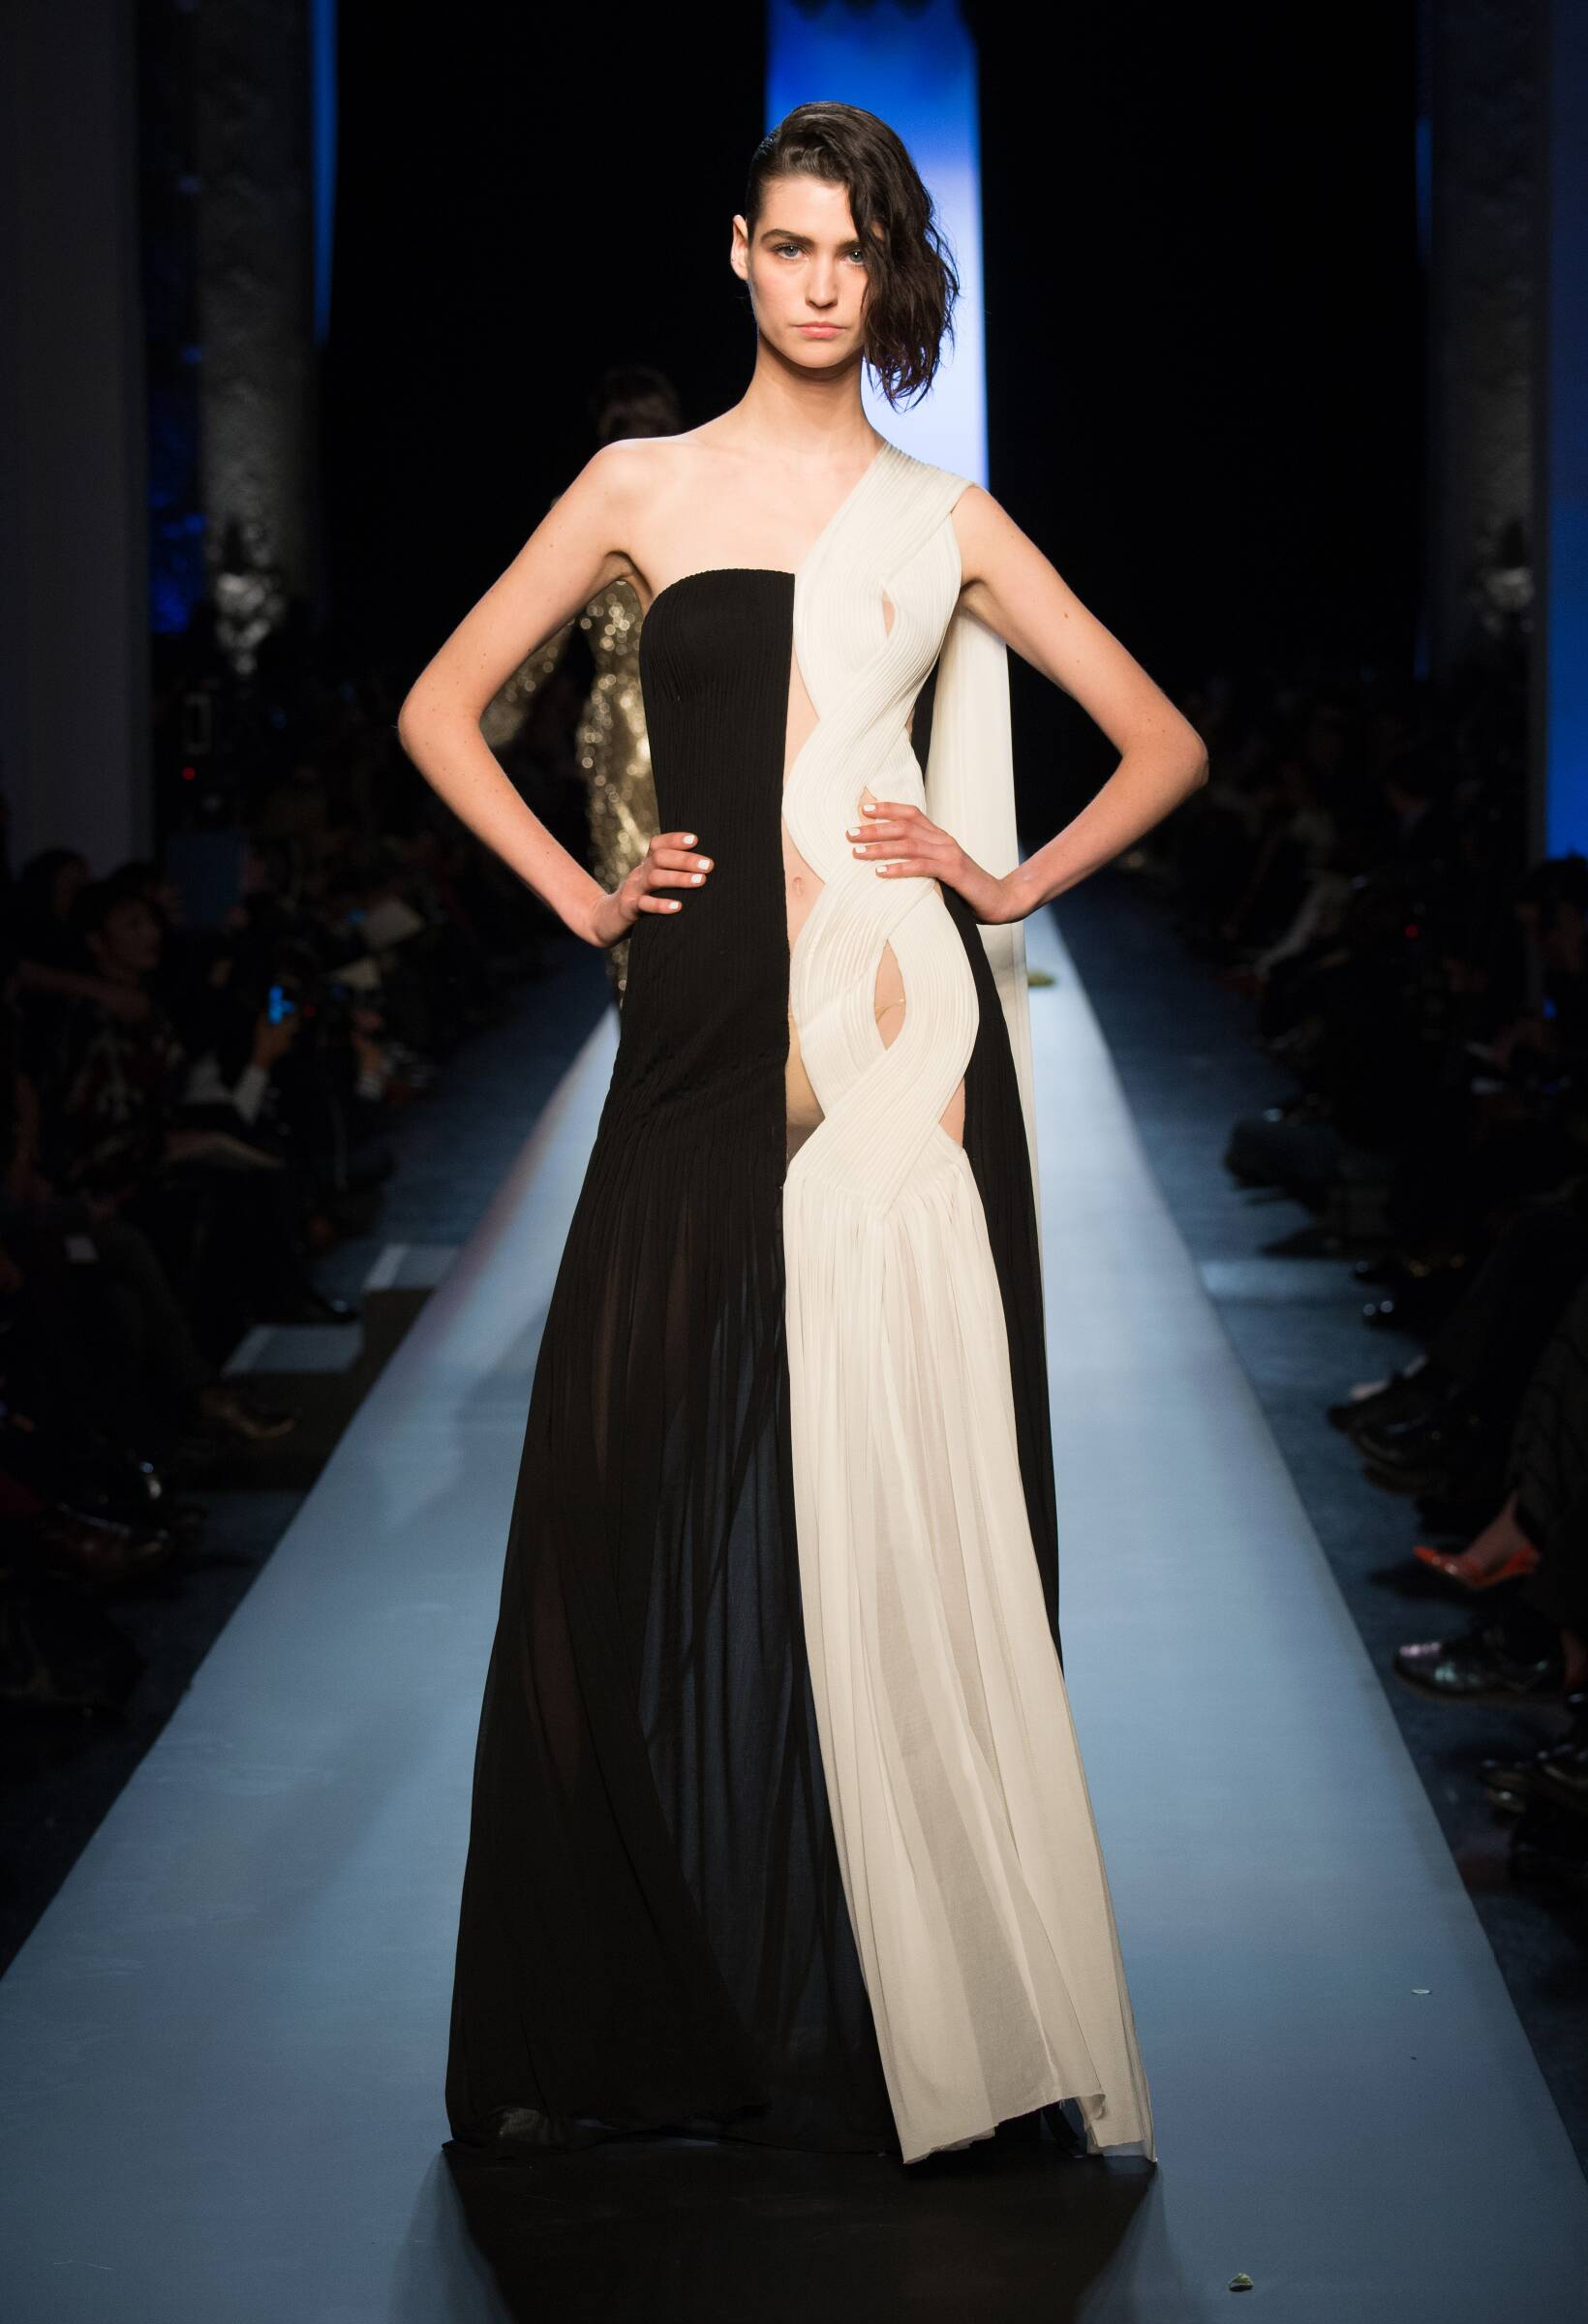 Catwalk 2015 Jean Paul Gaultier Haute Couture Collection Fashion Show Summer